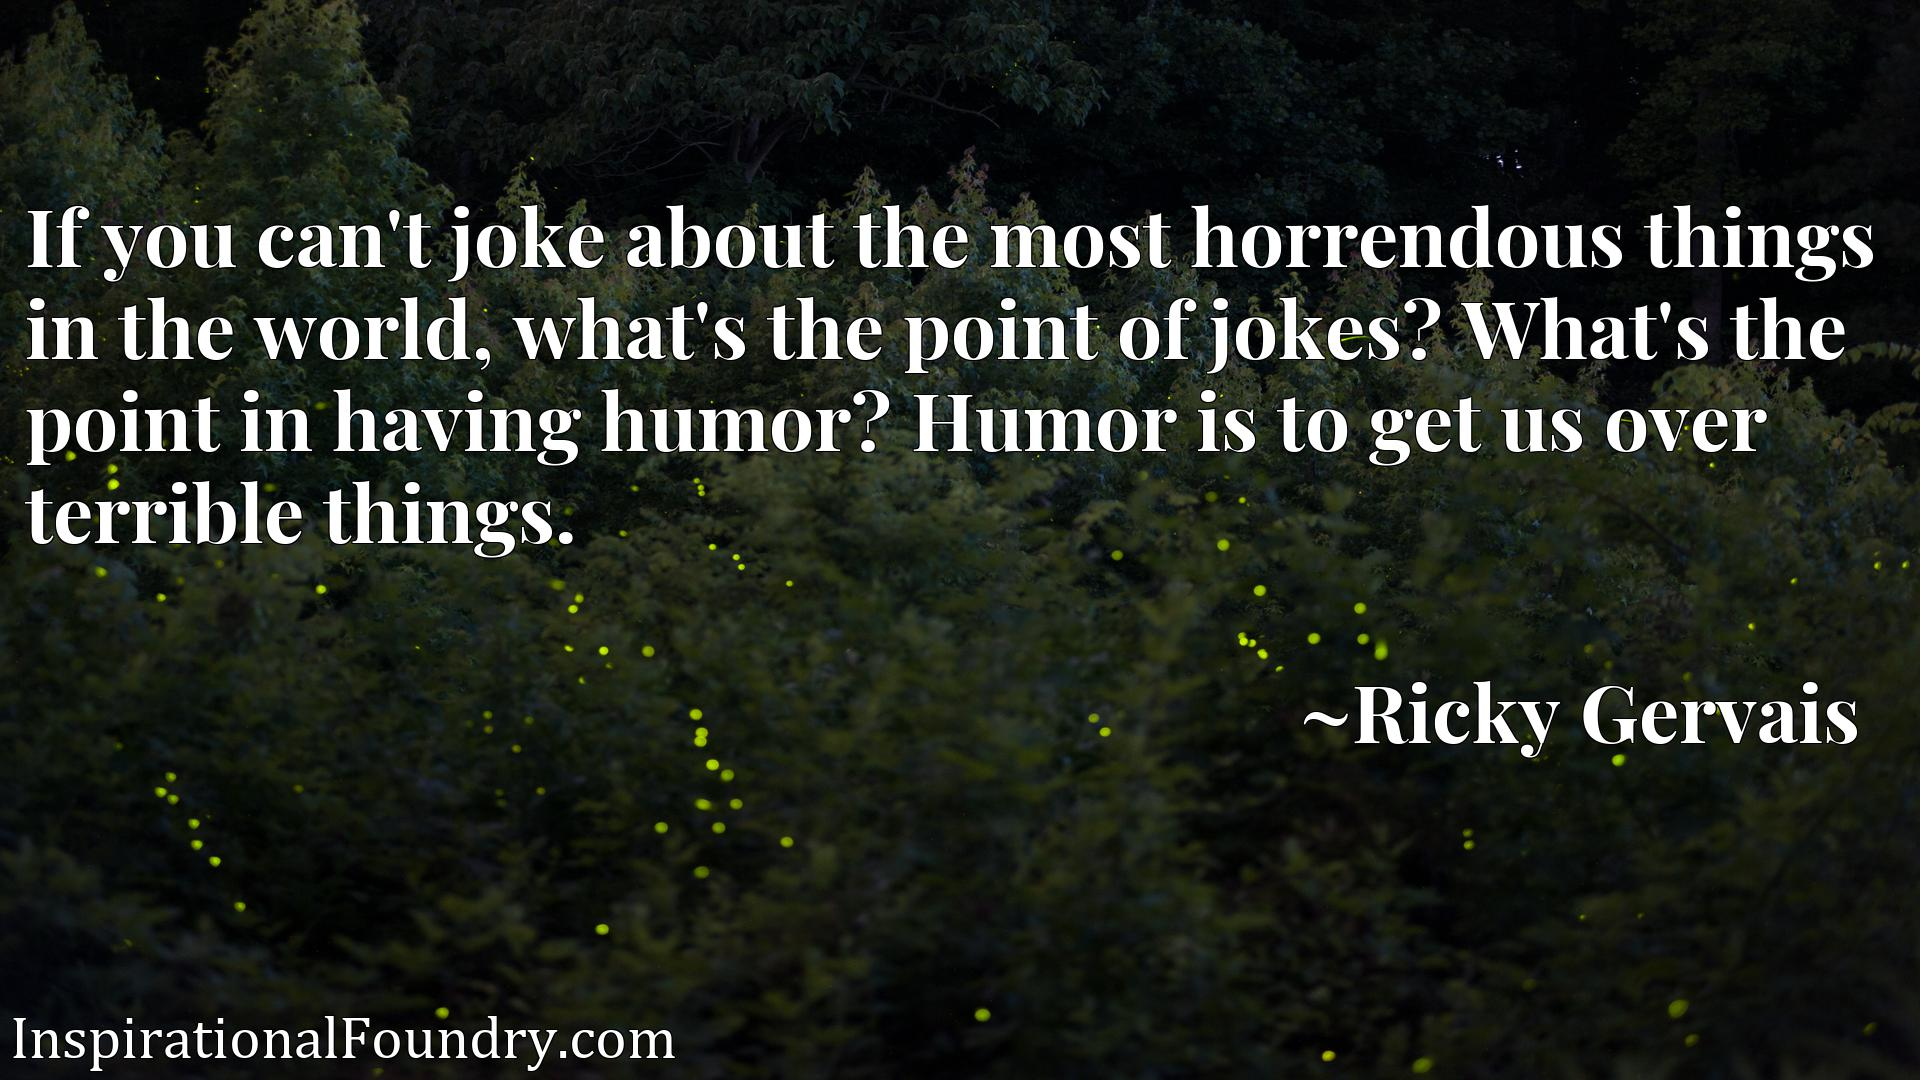 If you can't joke about the most horrendous things in the world, what's the point of jokes? What's the point in having humor? Humor is to get us over terrible things.